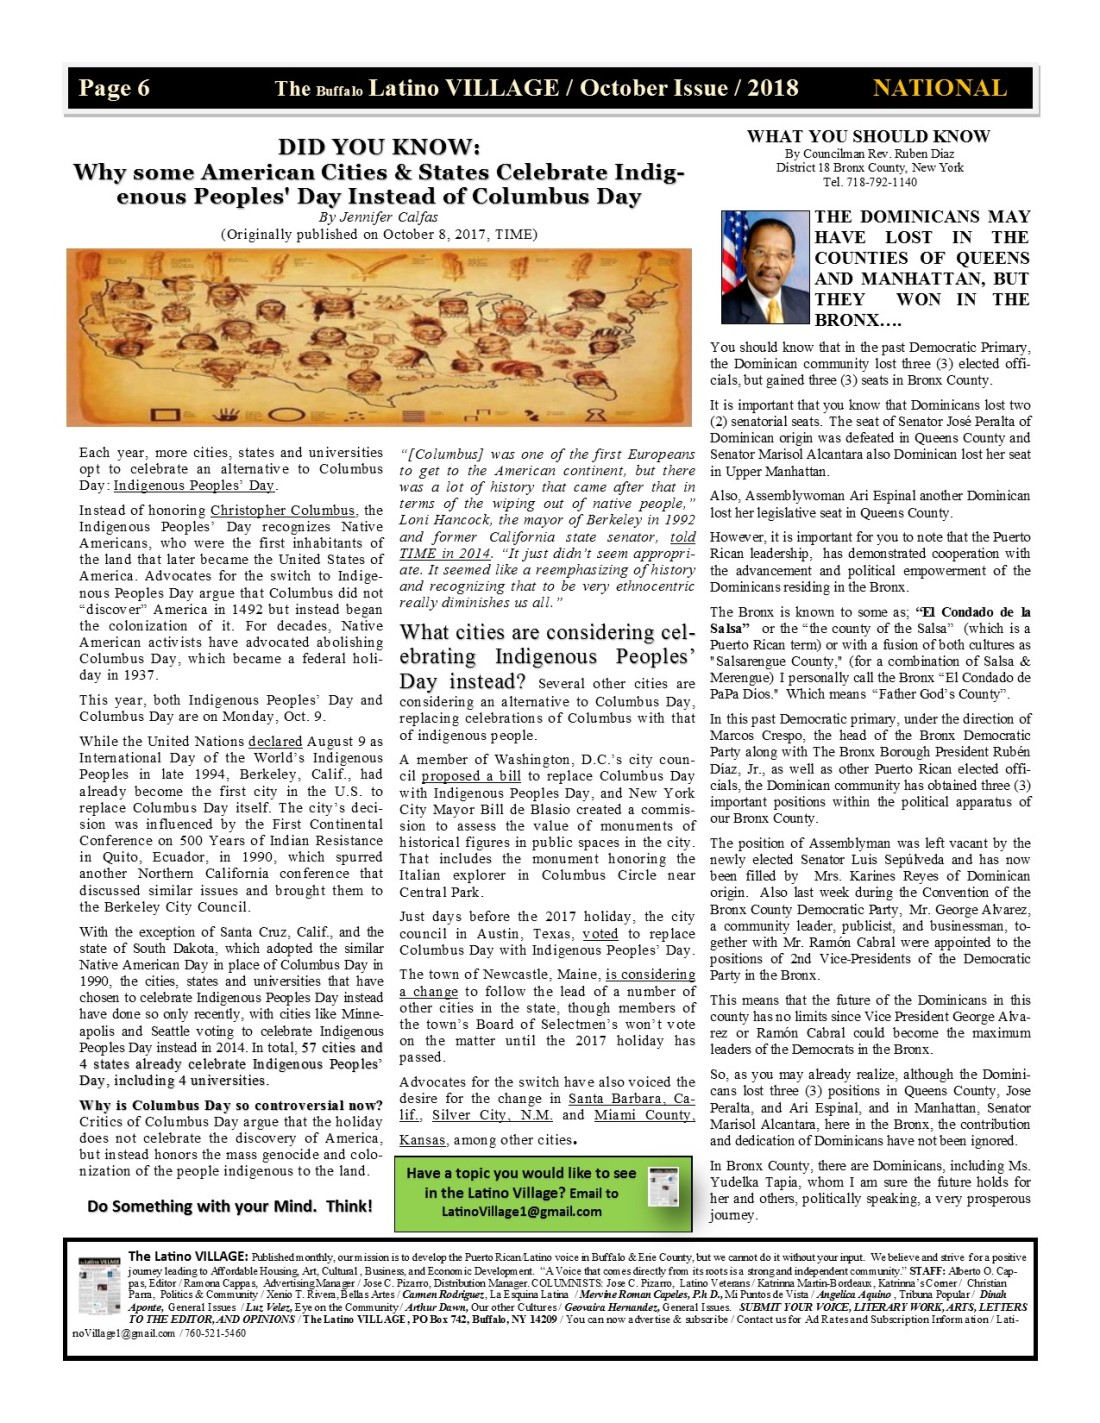 Page 6 Latino Village Newslette October Issue 2018 No. 12